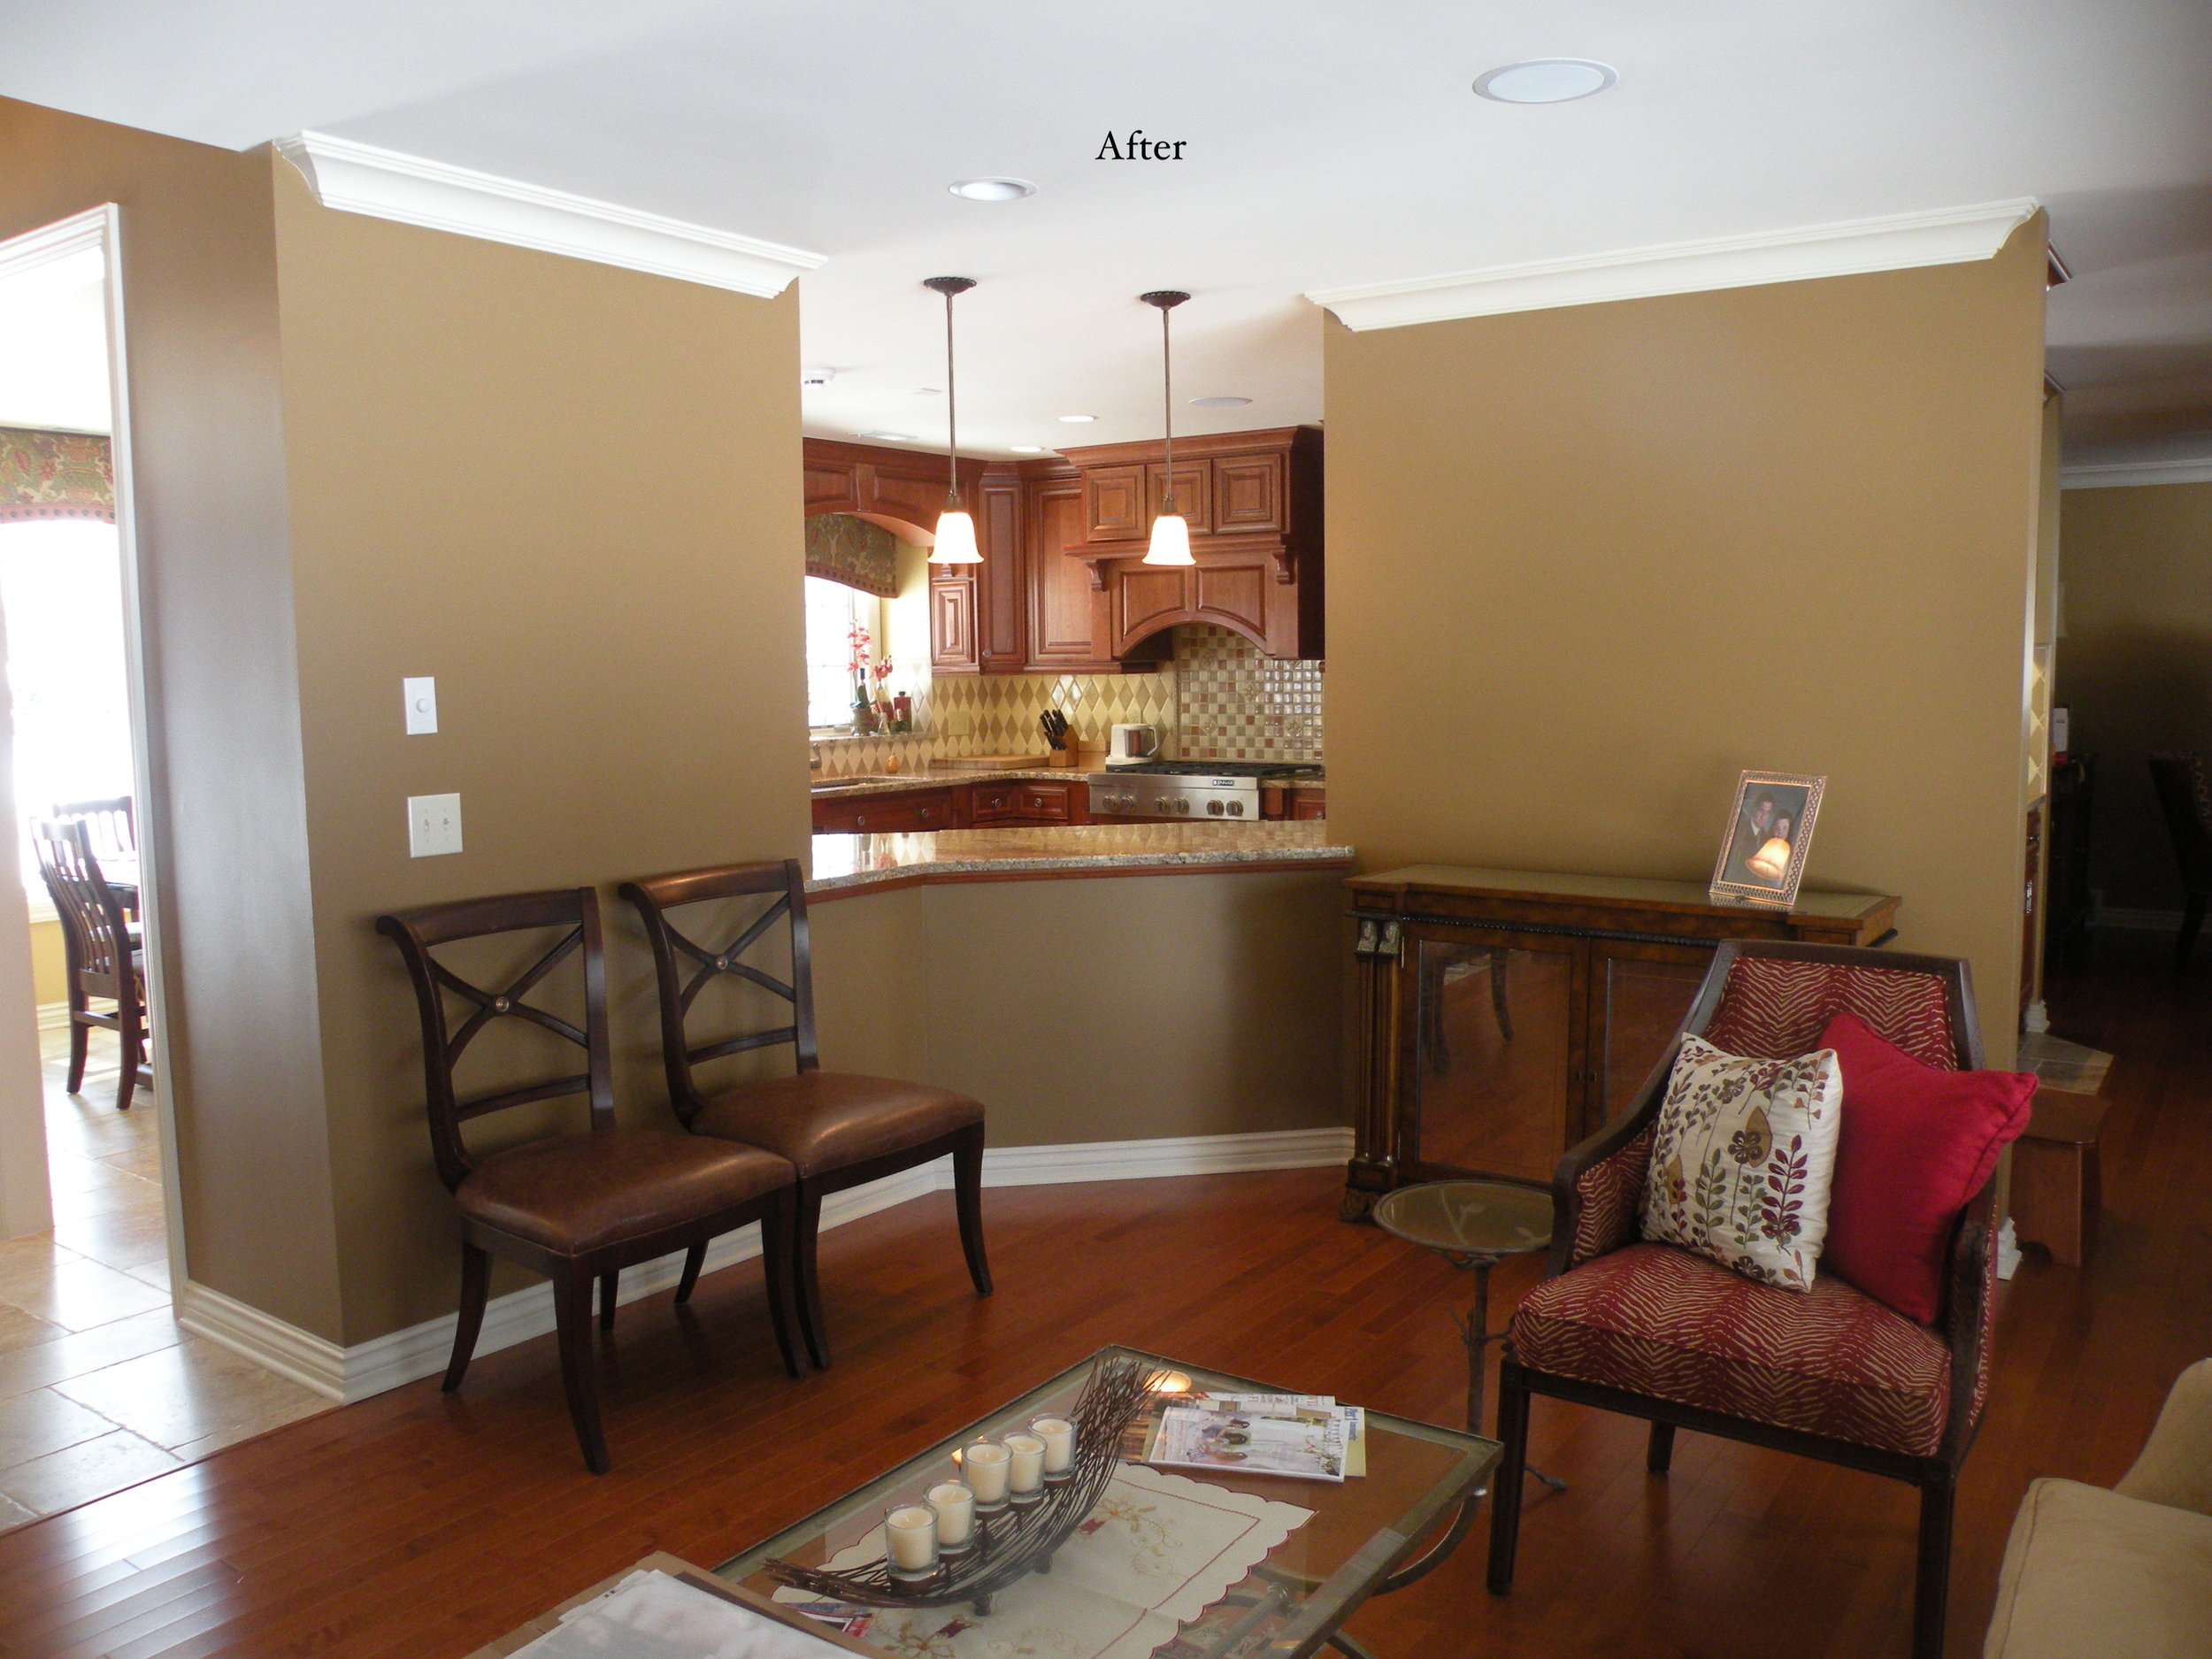 After Living Room looking into kitchen .JPG